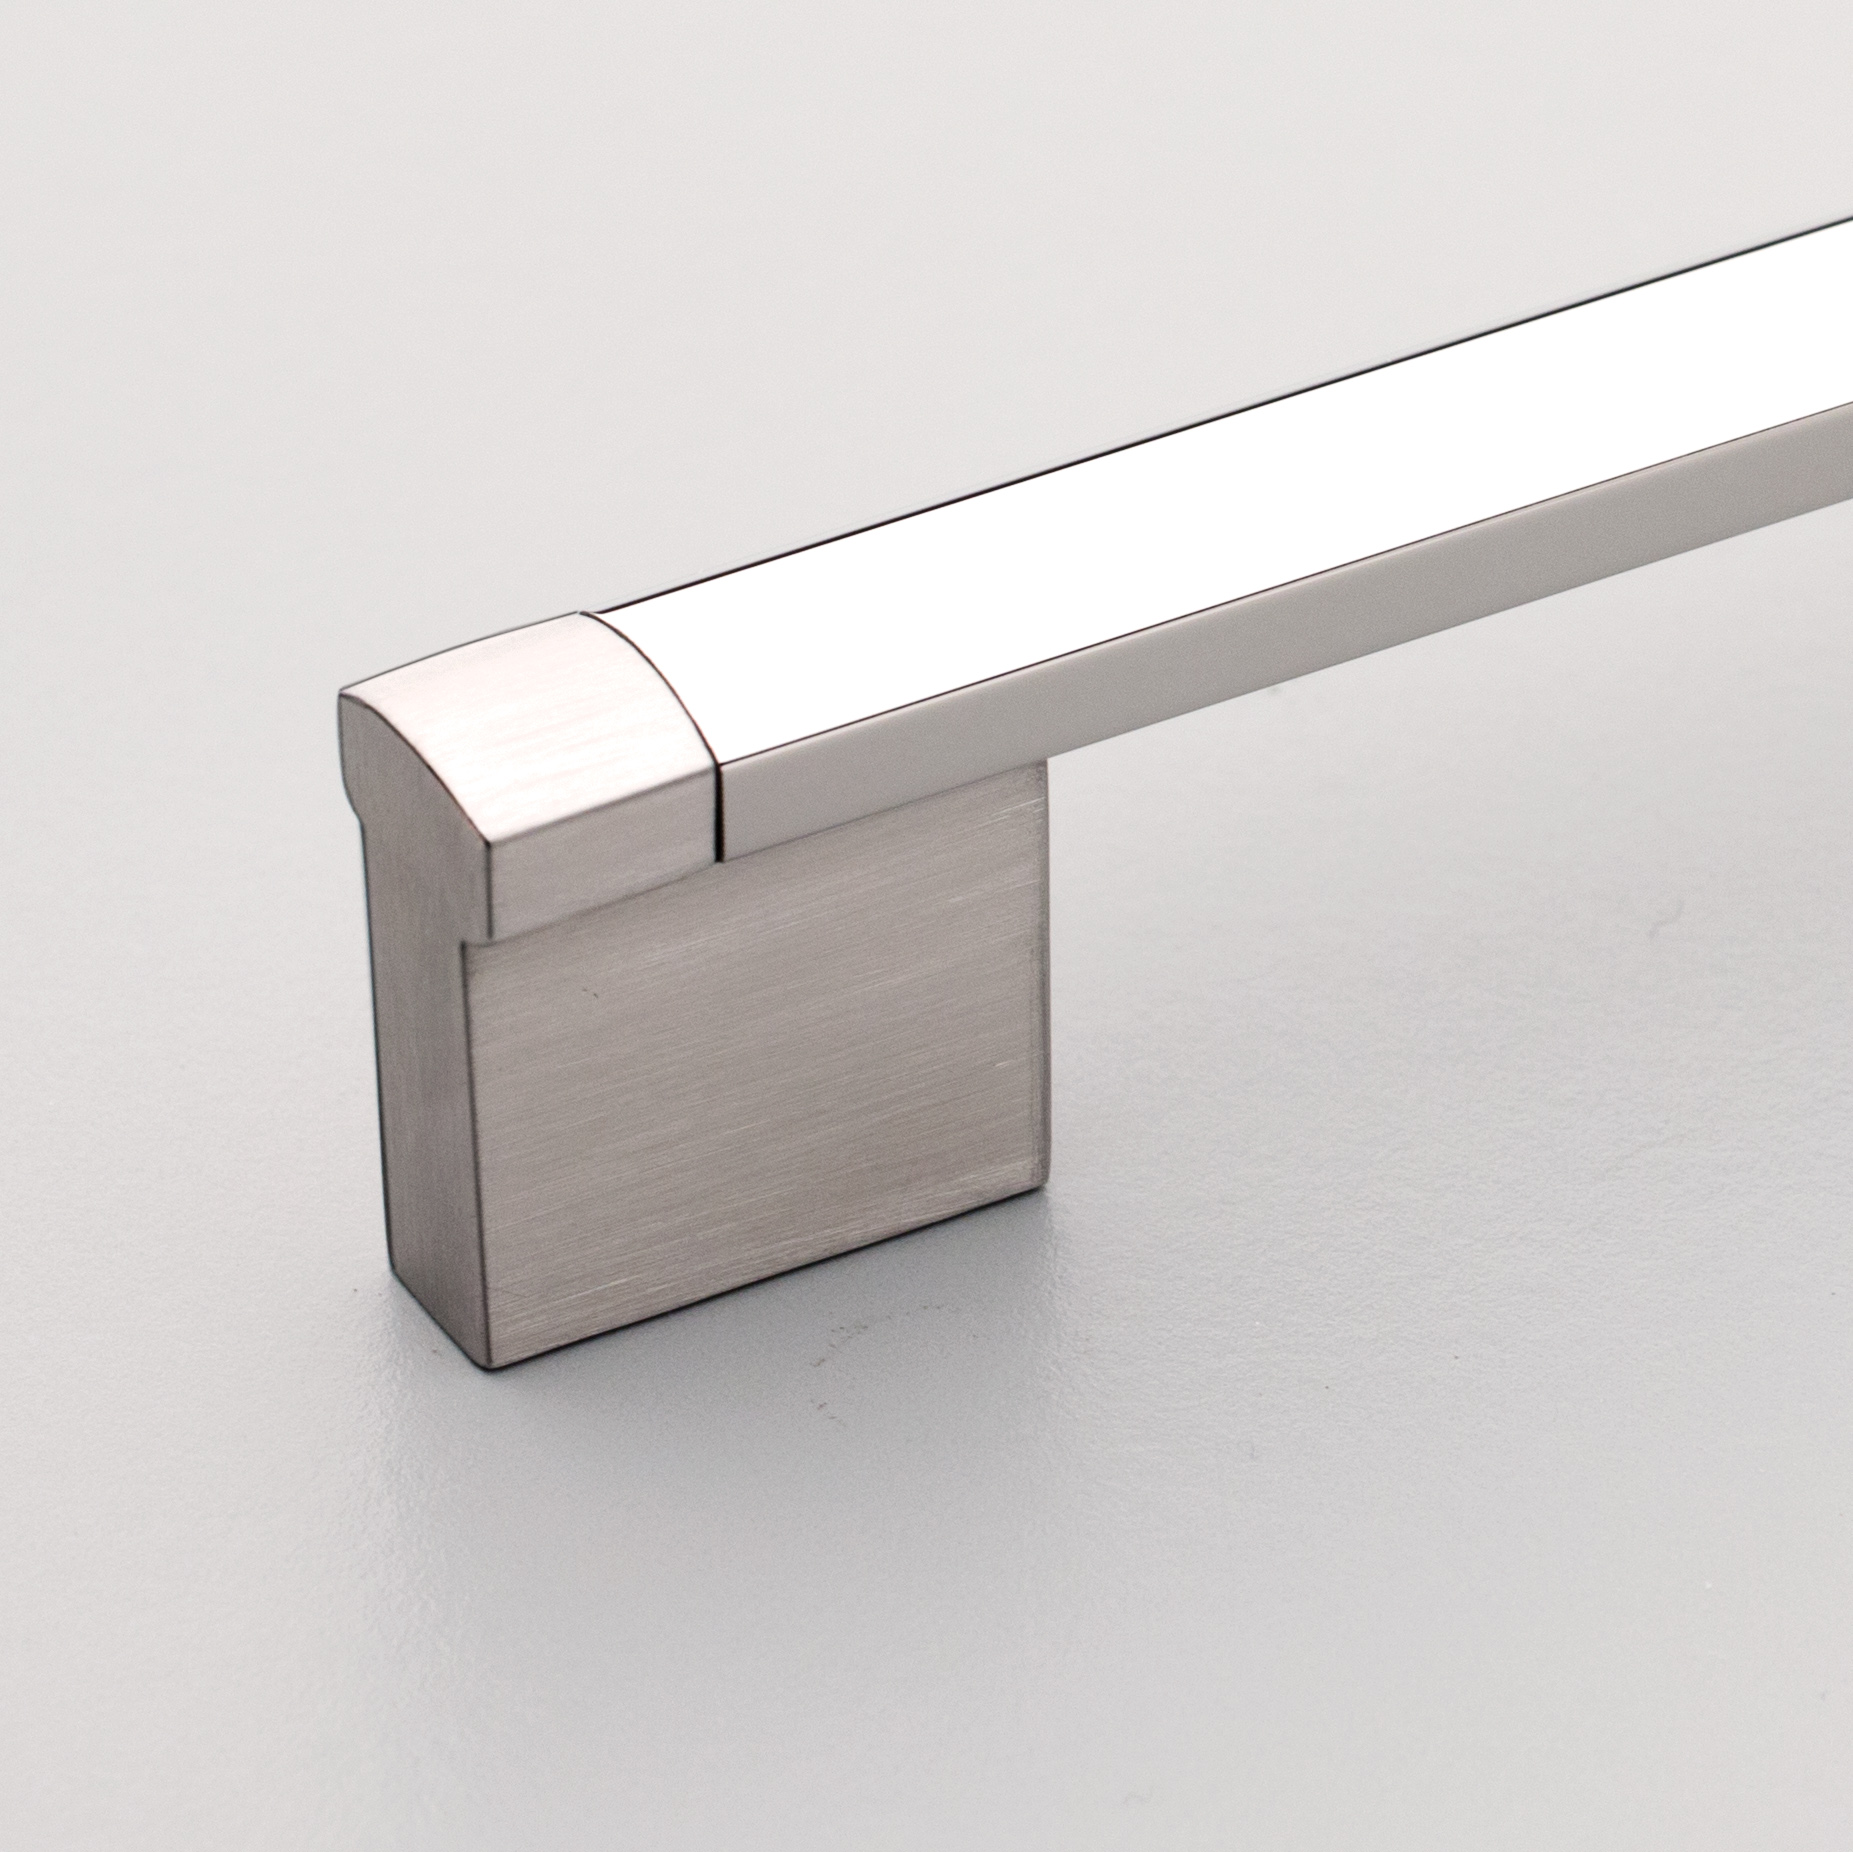 Flinders Solid Stainless Steel Kitchen Handles EN2181